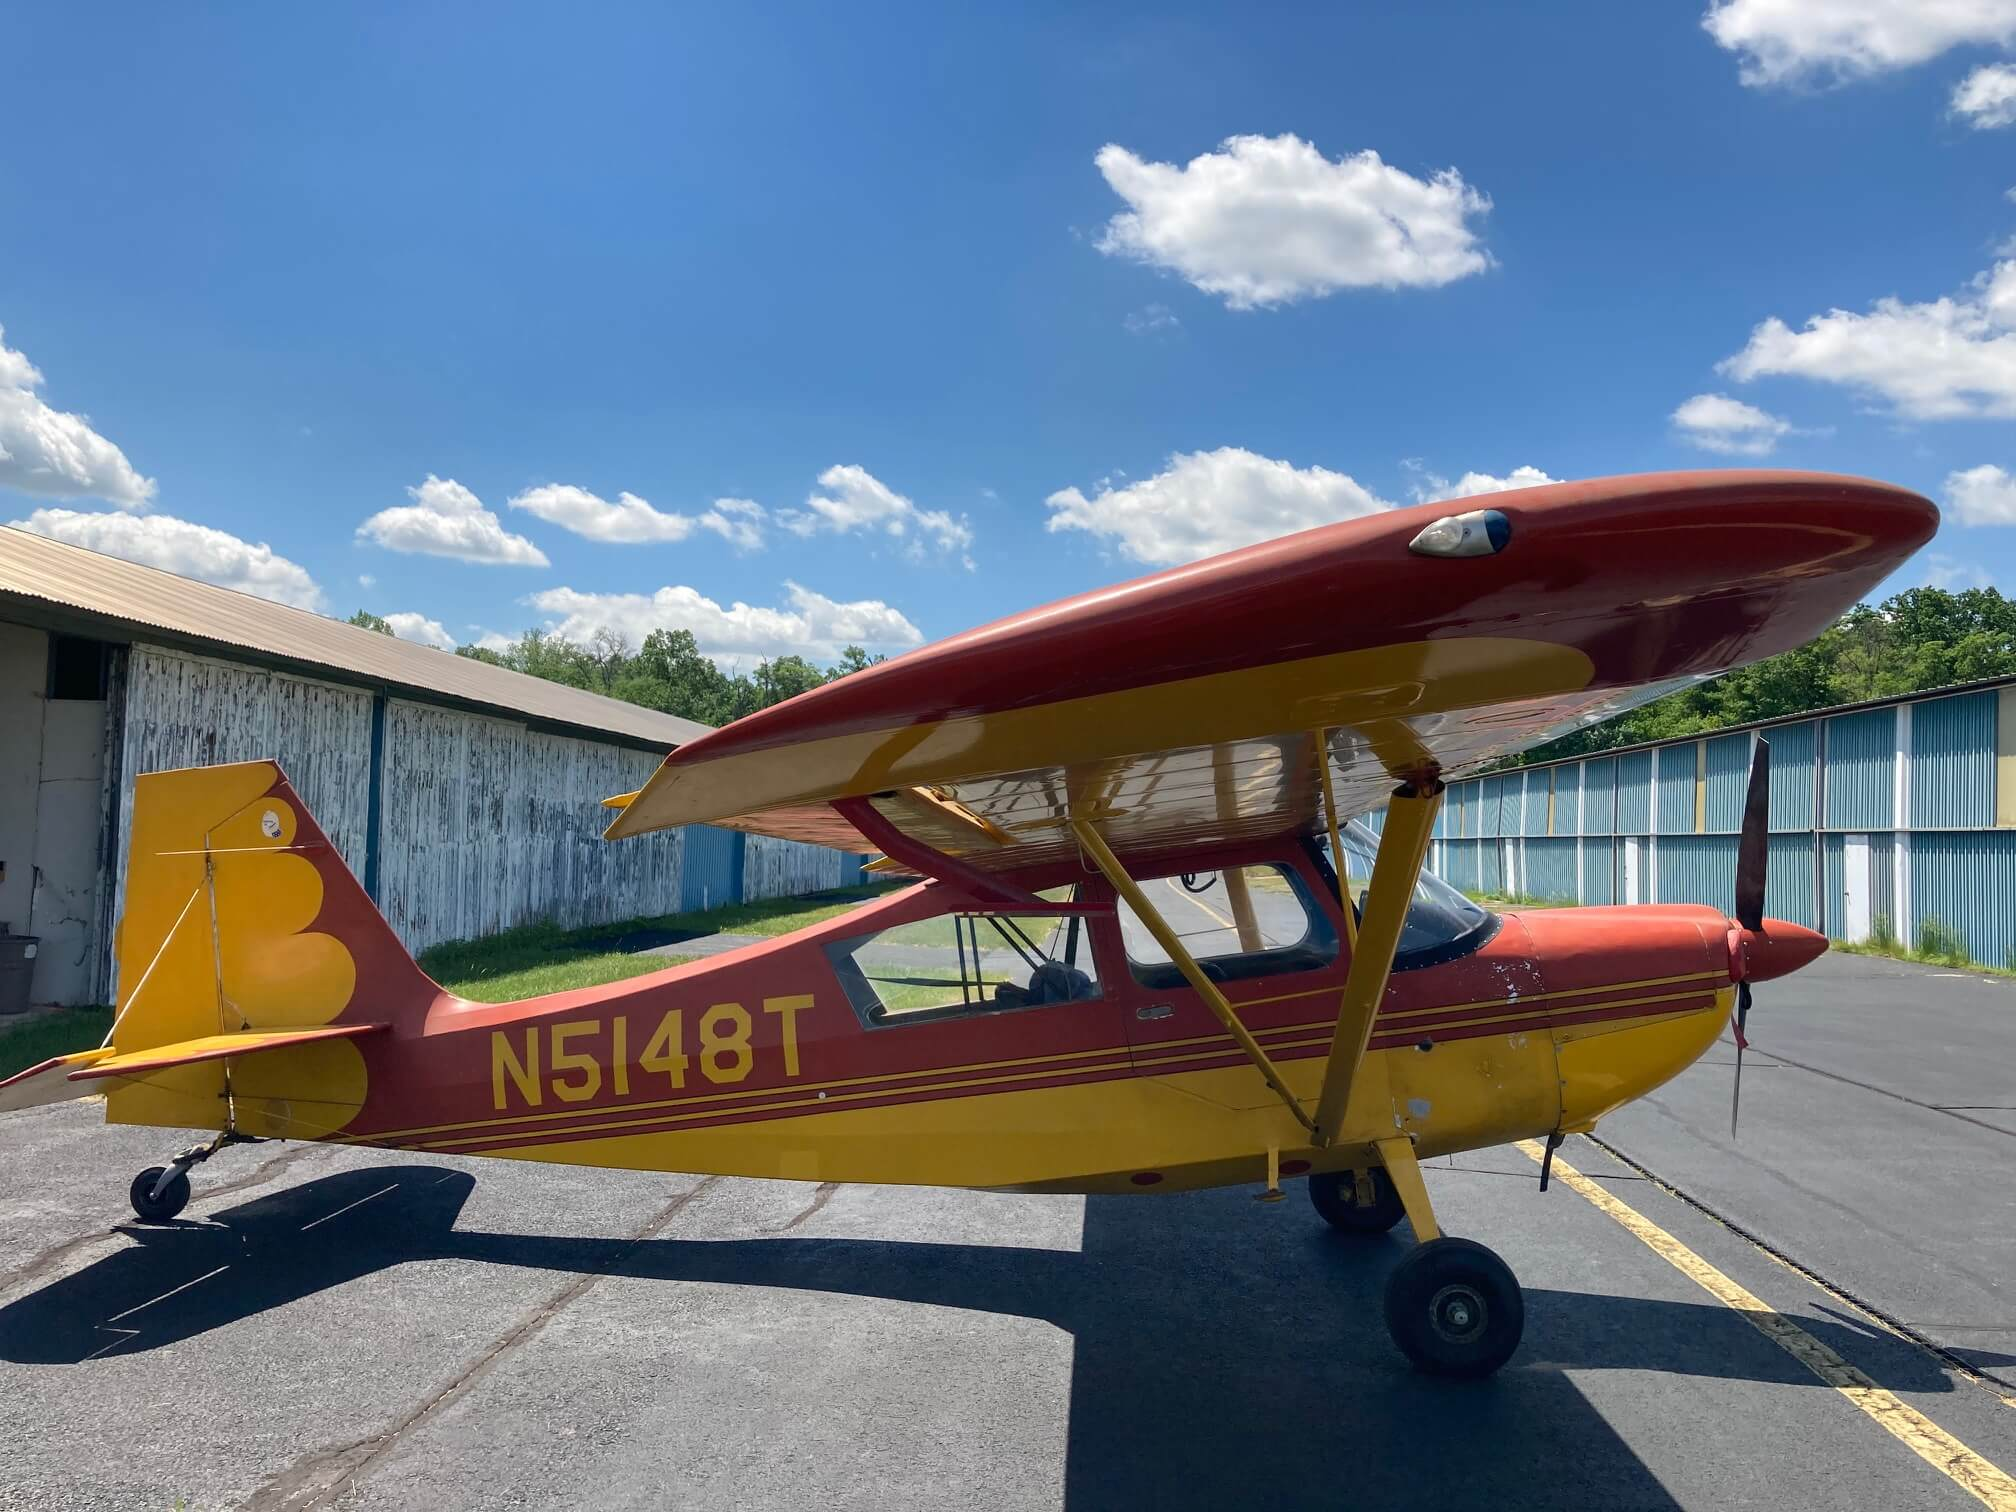 1967 American Champion FOR SALE at Princeton Airport - Contact Ken Nierenberg at 609-731-4628 for details